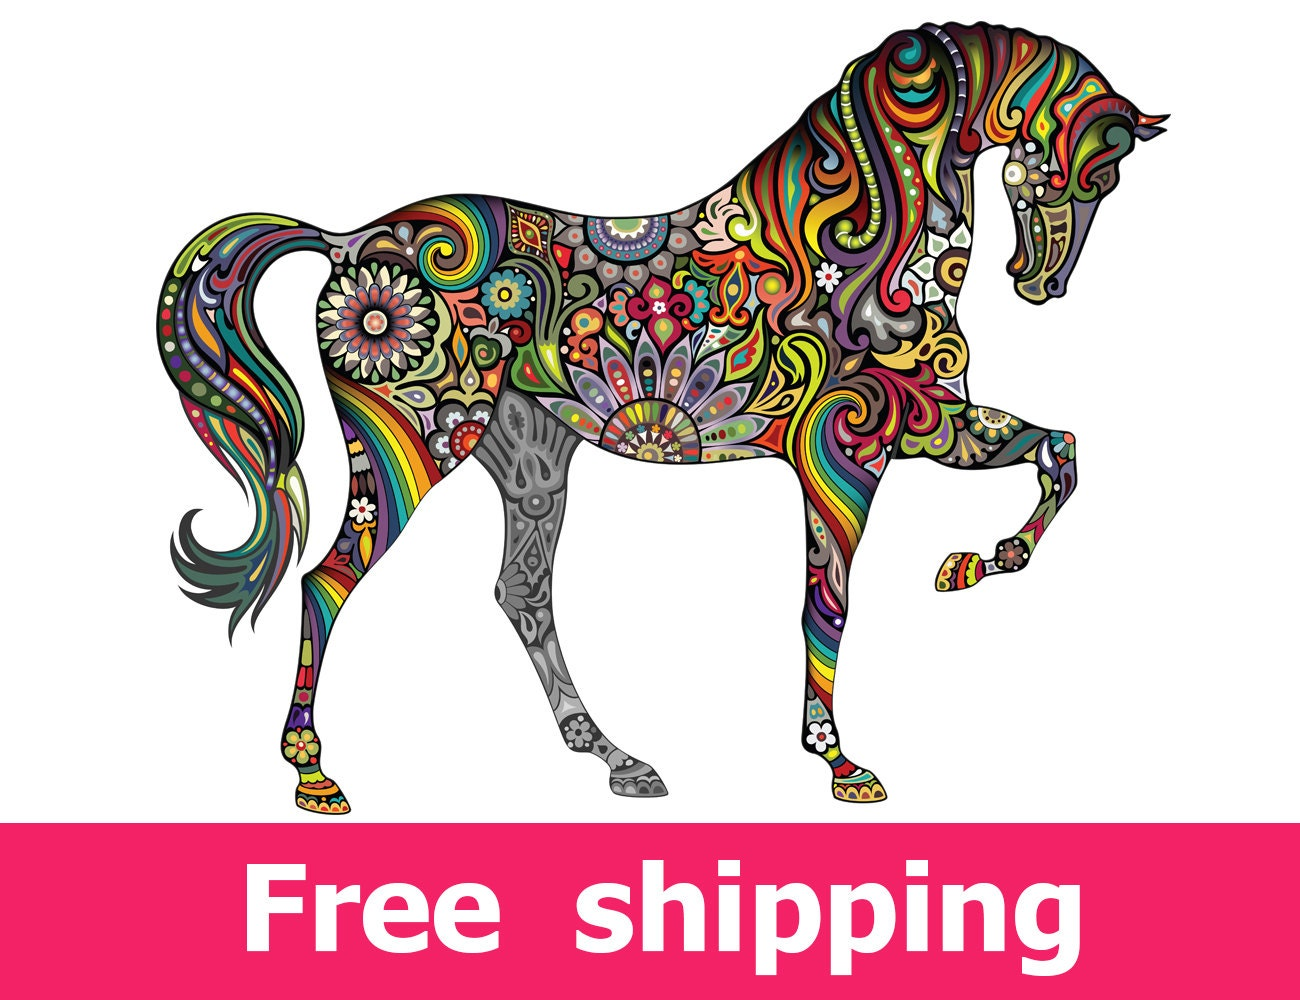 Abstract horse wall sticker colorful horse wall decal decor zoom amipublicfo Gallery